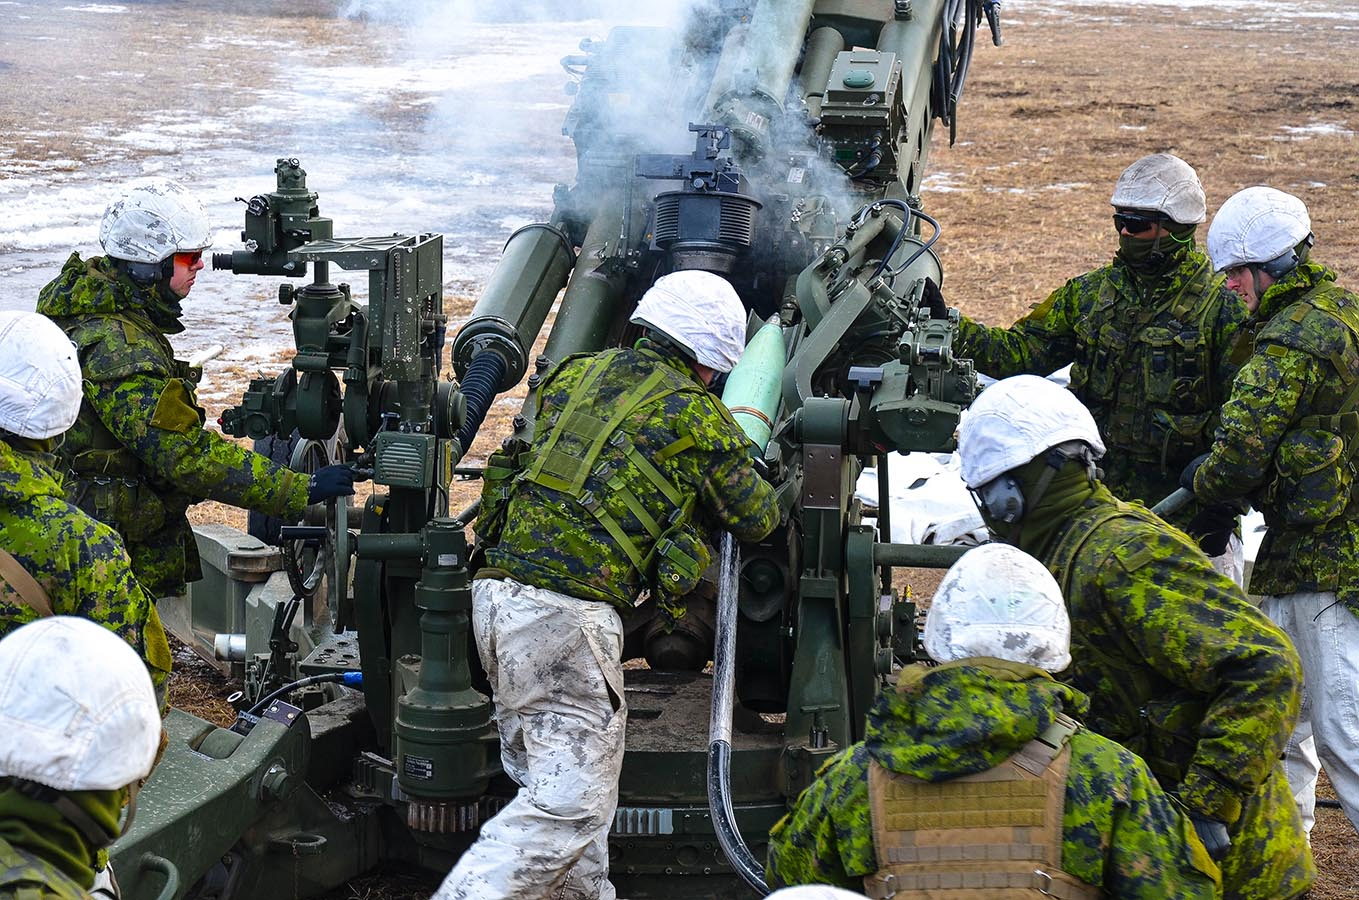 On March 18 and 19, 2017, members of 38 Canadian Brigade Group Artillery Tactical Group (a Canadian Army (CA) Reserve Force unit) and 1st Battalion Royal Canadian Horse Artillery (a CA Regular Force unit) conducted collective training during Exercise FROZEN GUNNER at Canadian Forces Base Shilo in Manitoba, conducting coordinated Battery and Regimental fire missions and plans with the C3 105mm and M777 155mm Howitzers. Photo: Master Bombardier Lynn Danielson, 116th Independent Field Battery, Royal Canadian Artillery. ©2017 DND/MDN Canada.